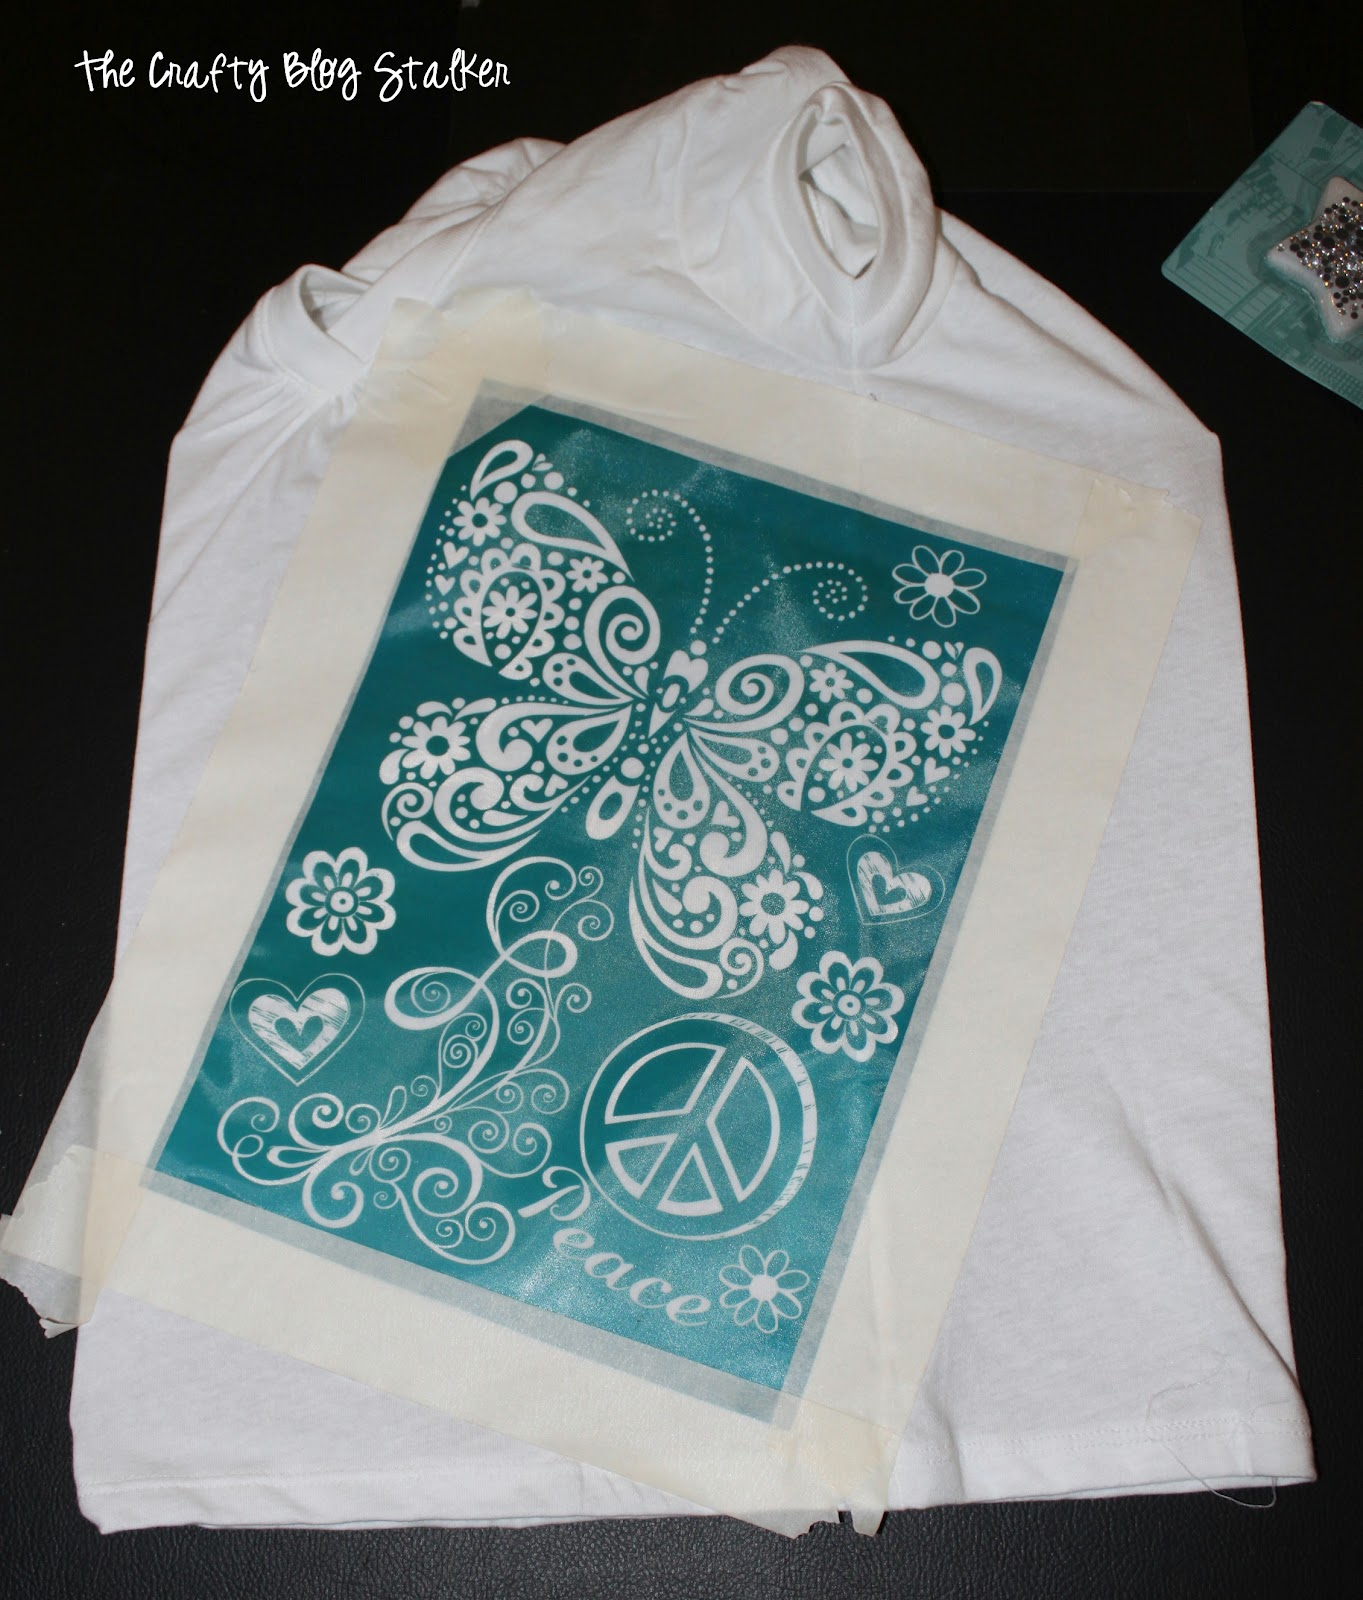 DIY TShirt Screen Printing - The Crafty Blog Stalker